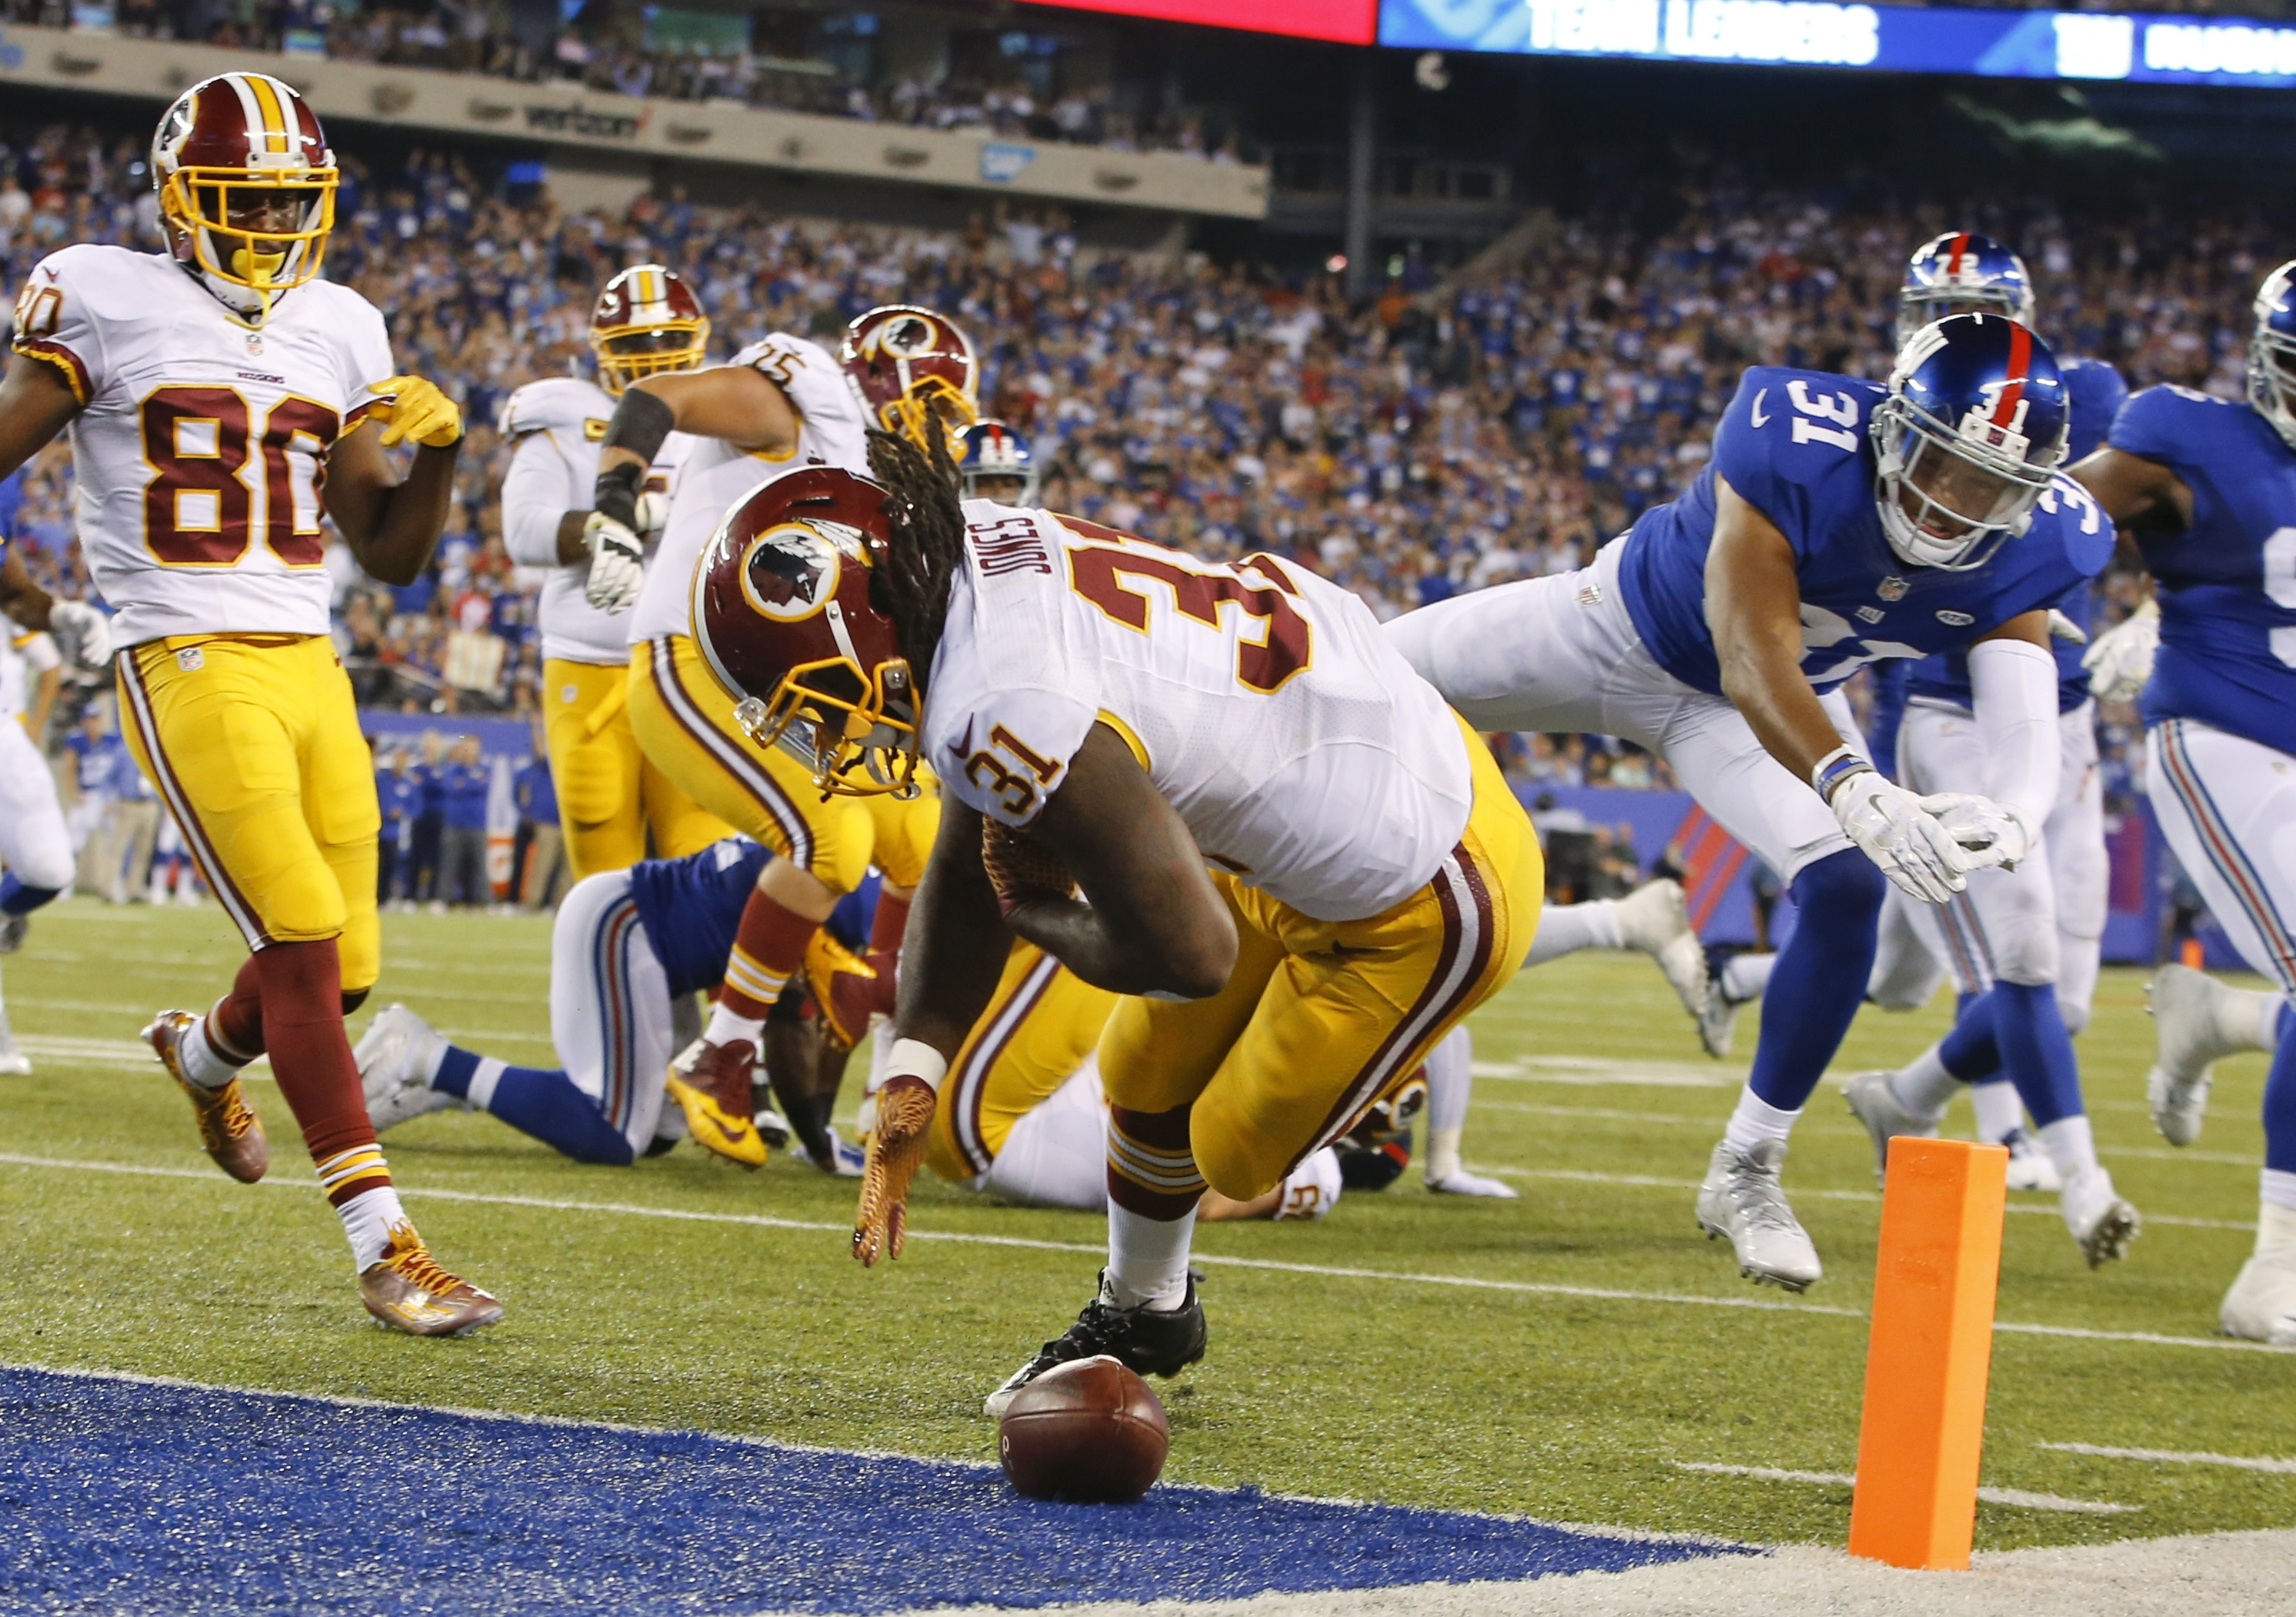 Redskins suffer defeat, but don't seem defeated